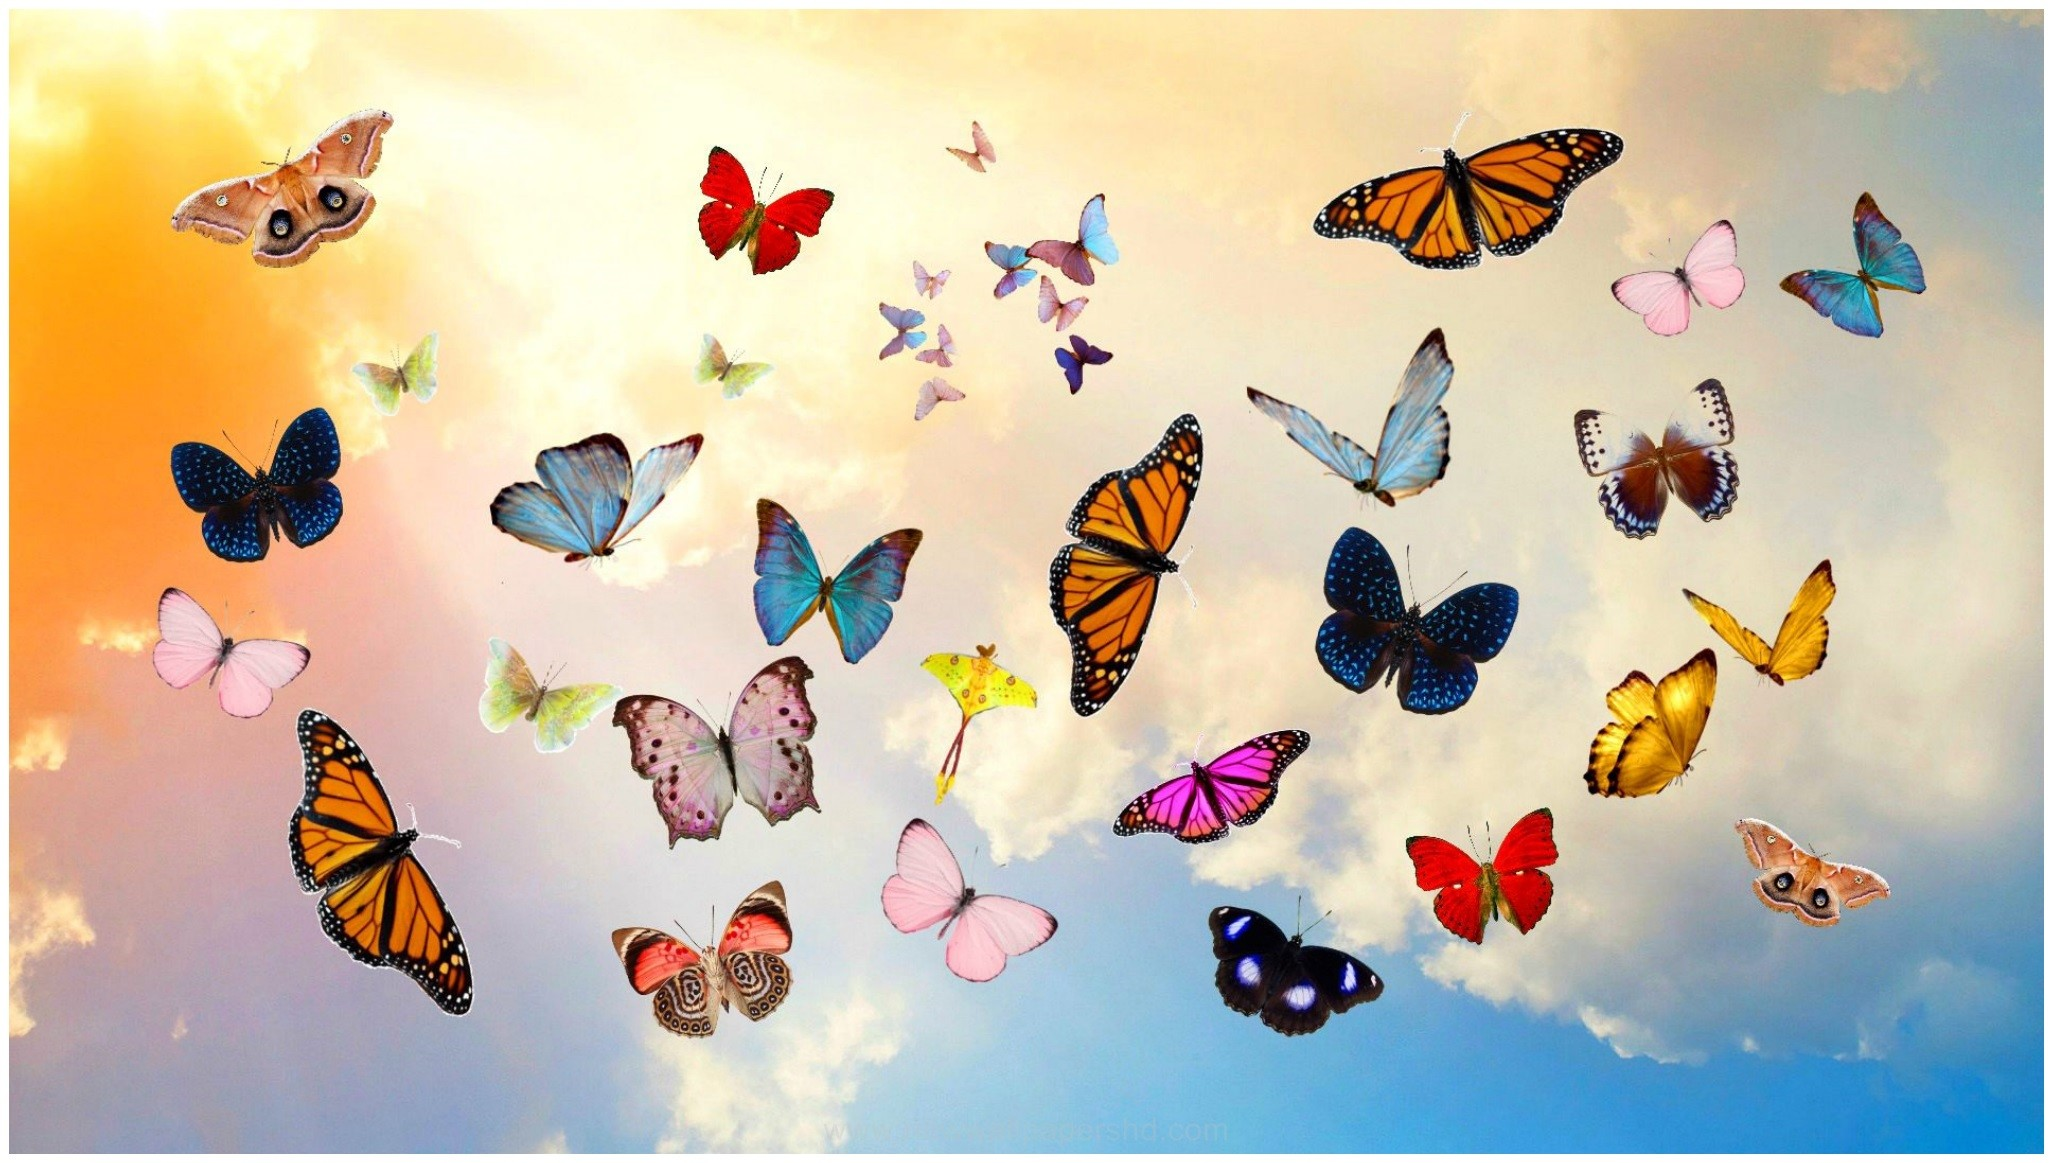 2053x1163 BEAUTIFUL BUTTERFLIES HD WALLPAPER